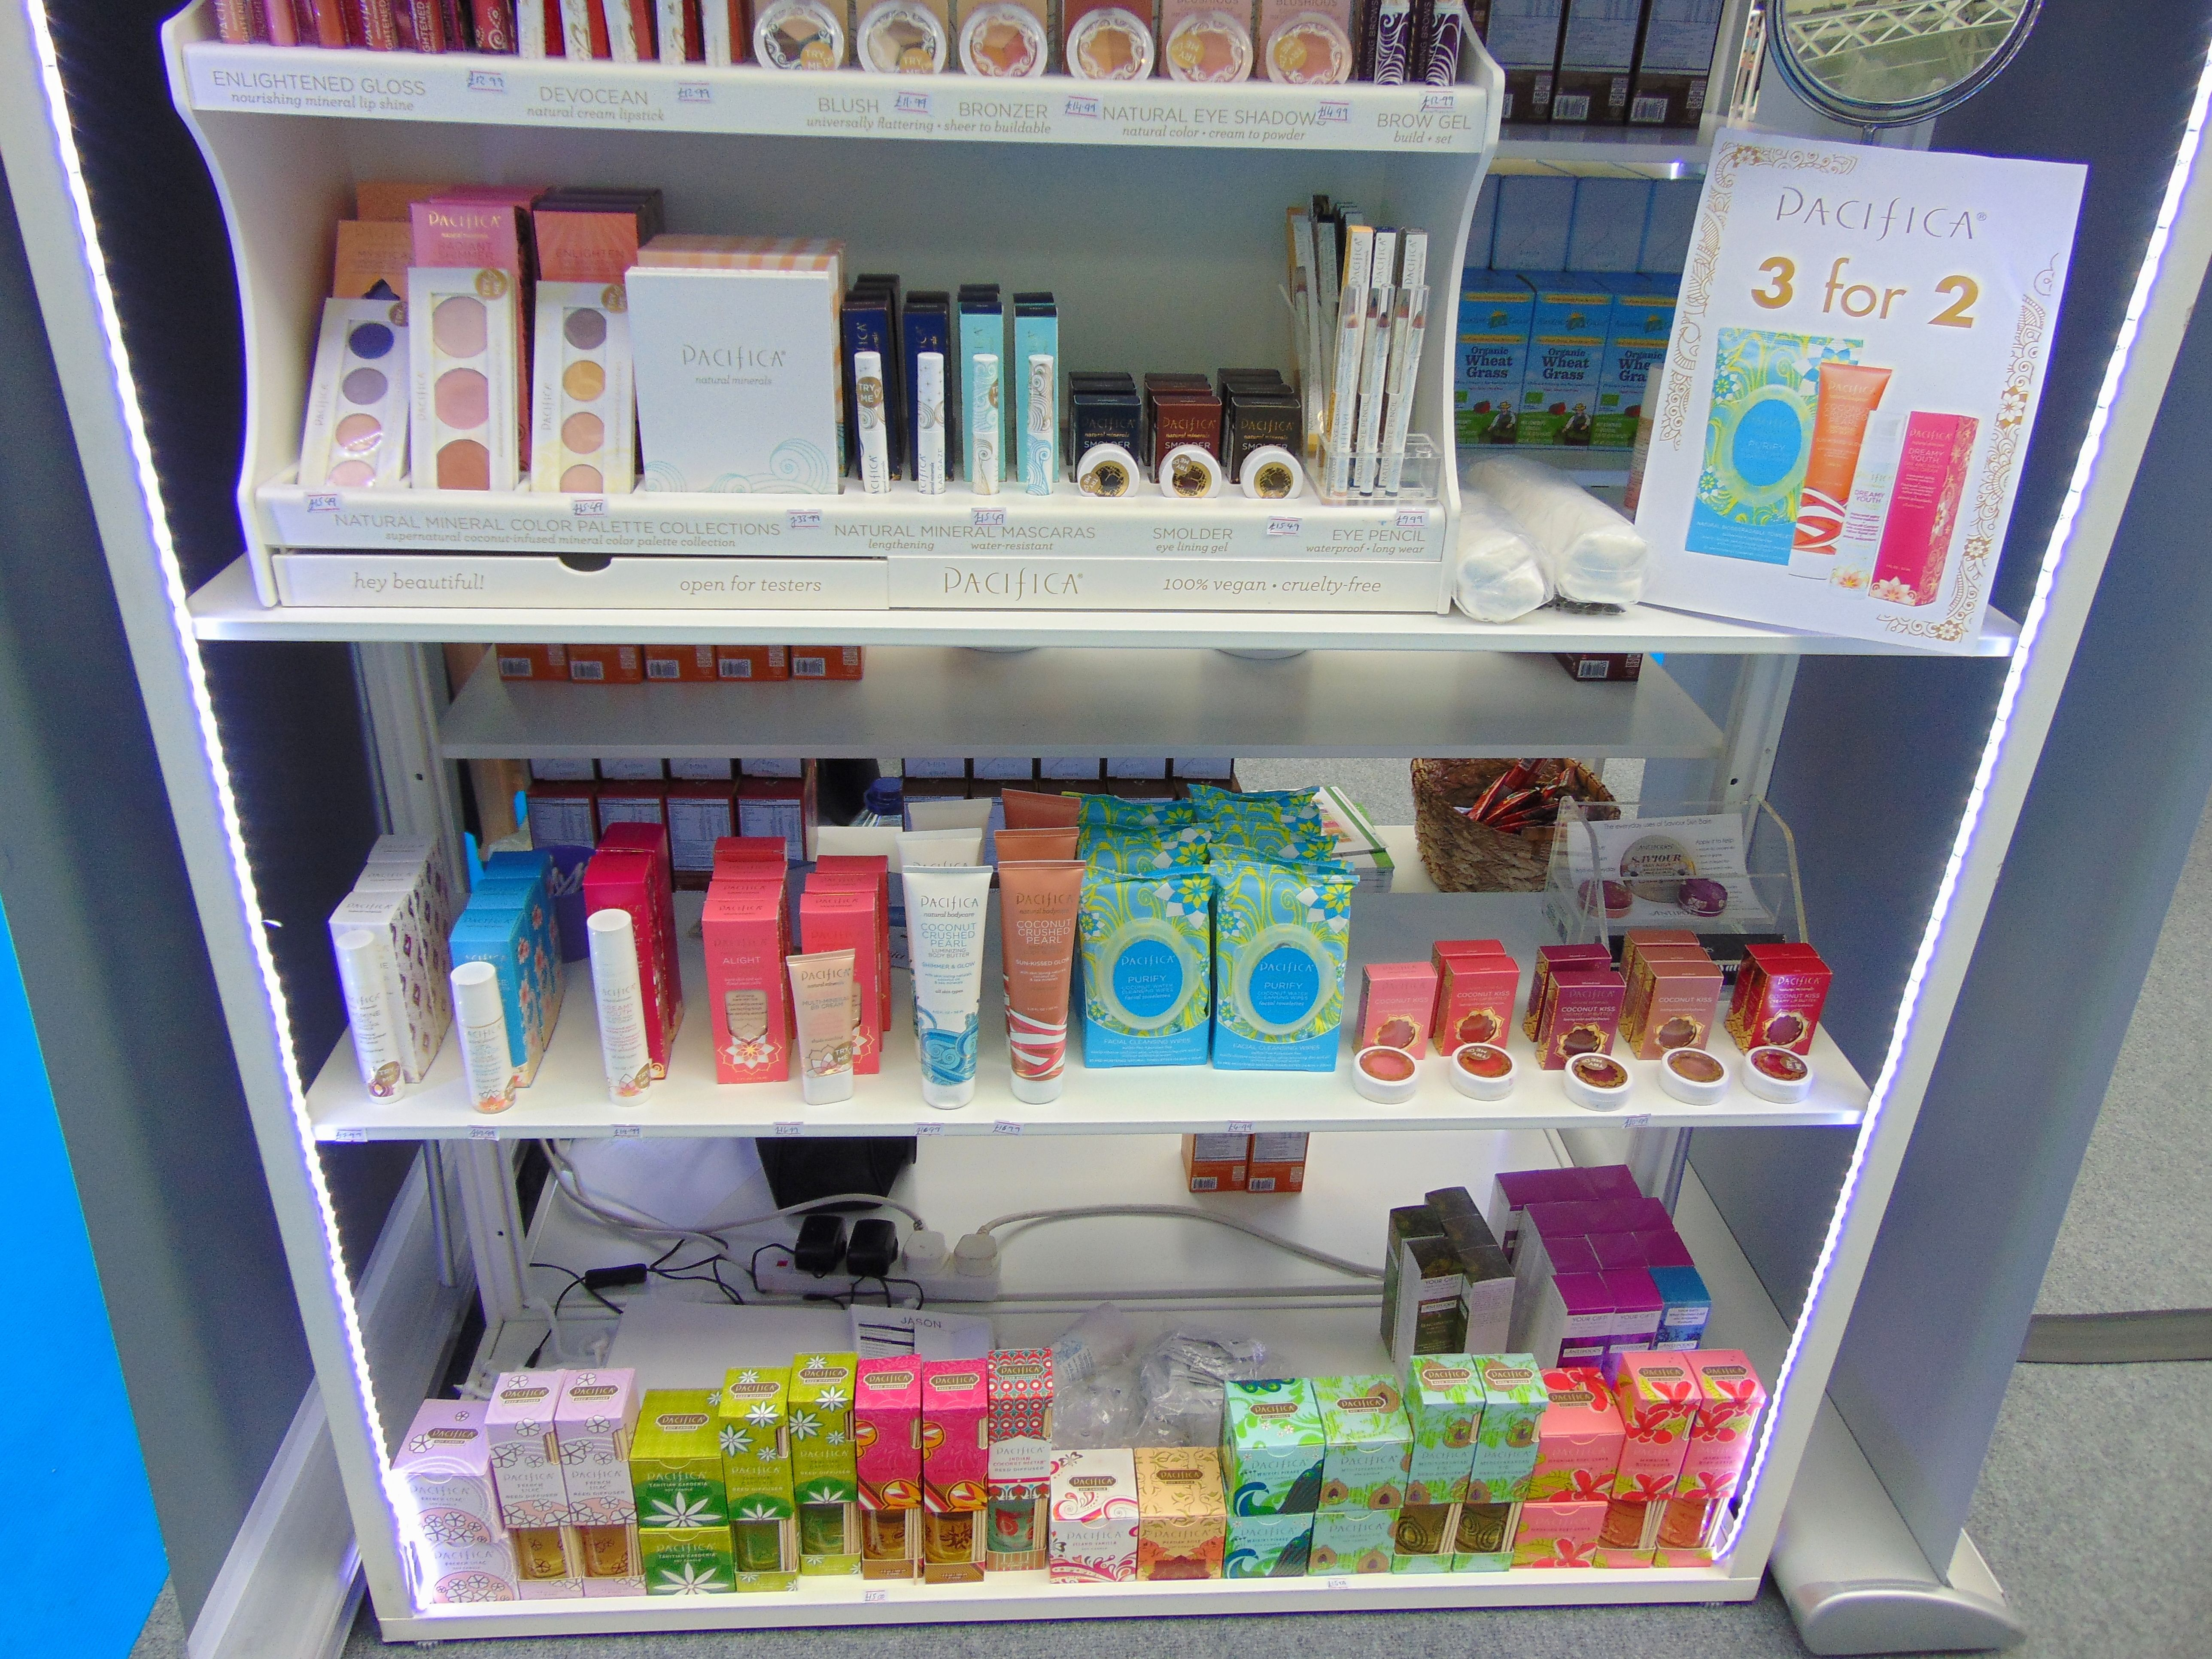 Pacifica showing off their amazing range of natural makeup at the Love Natural, Love You Show in London this weekend